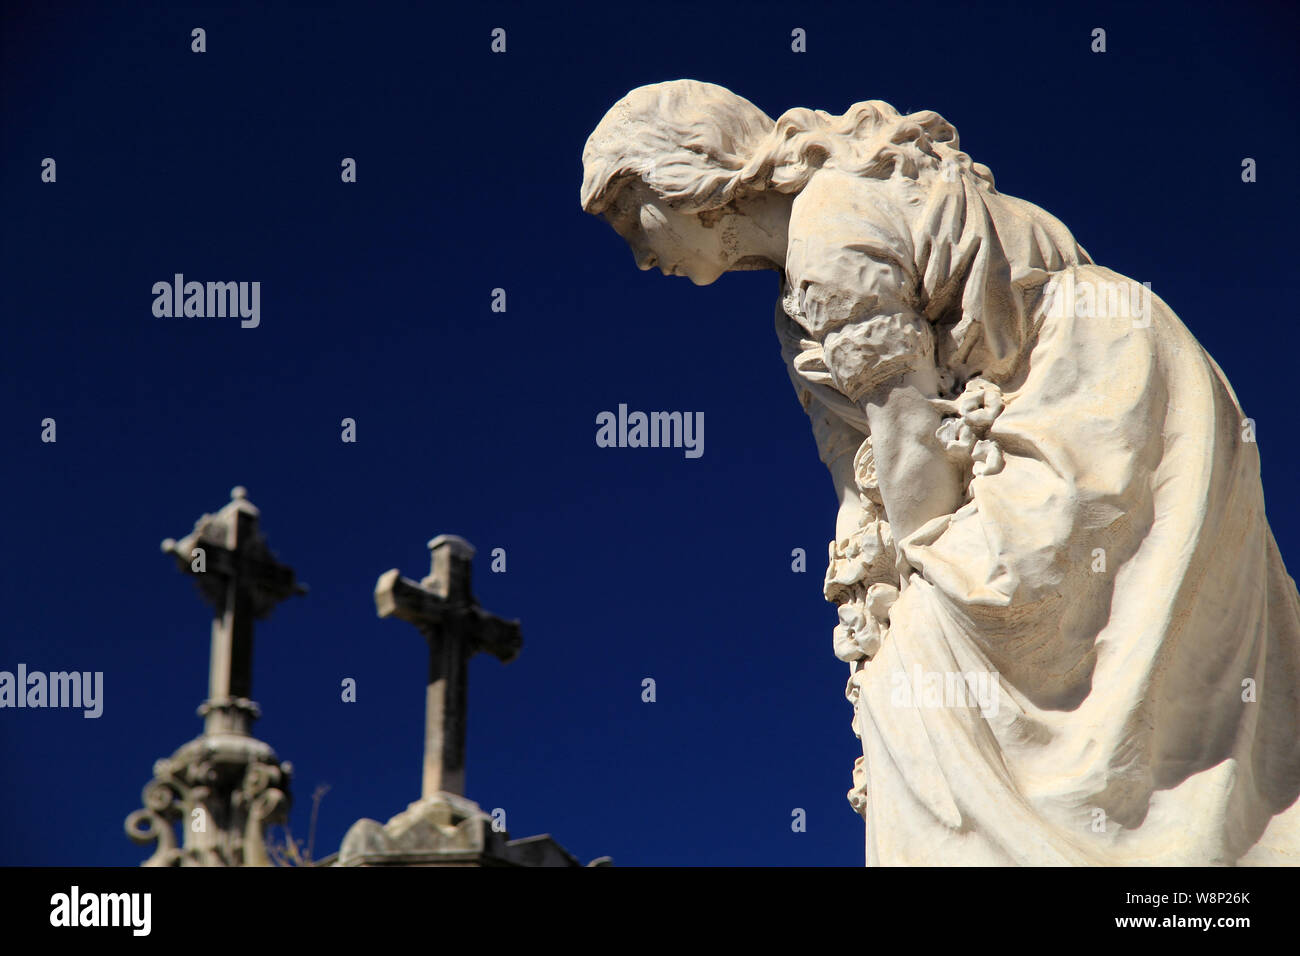 Sculpture Mausoleum High Resolution Stock Photography And Images Alamy